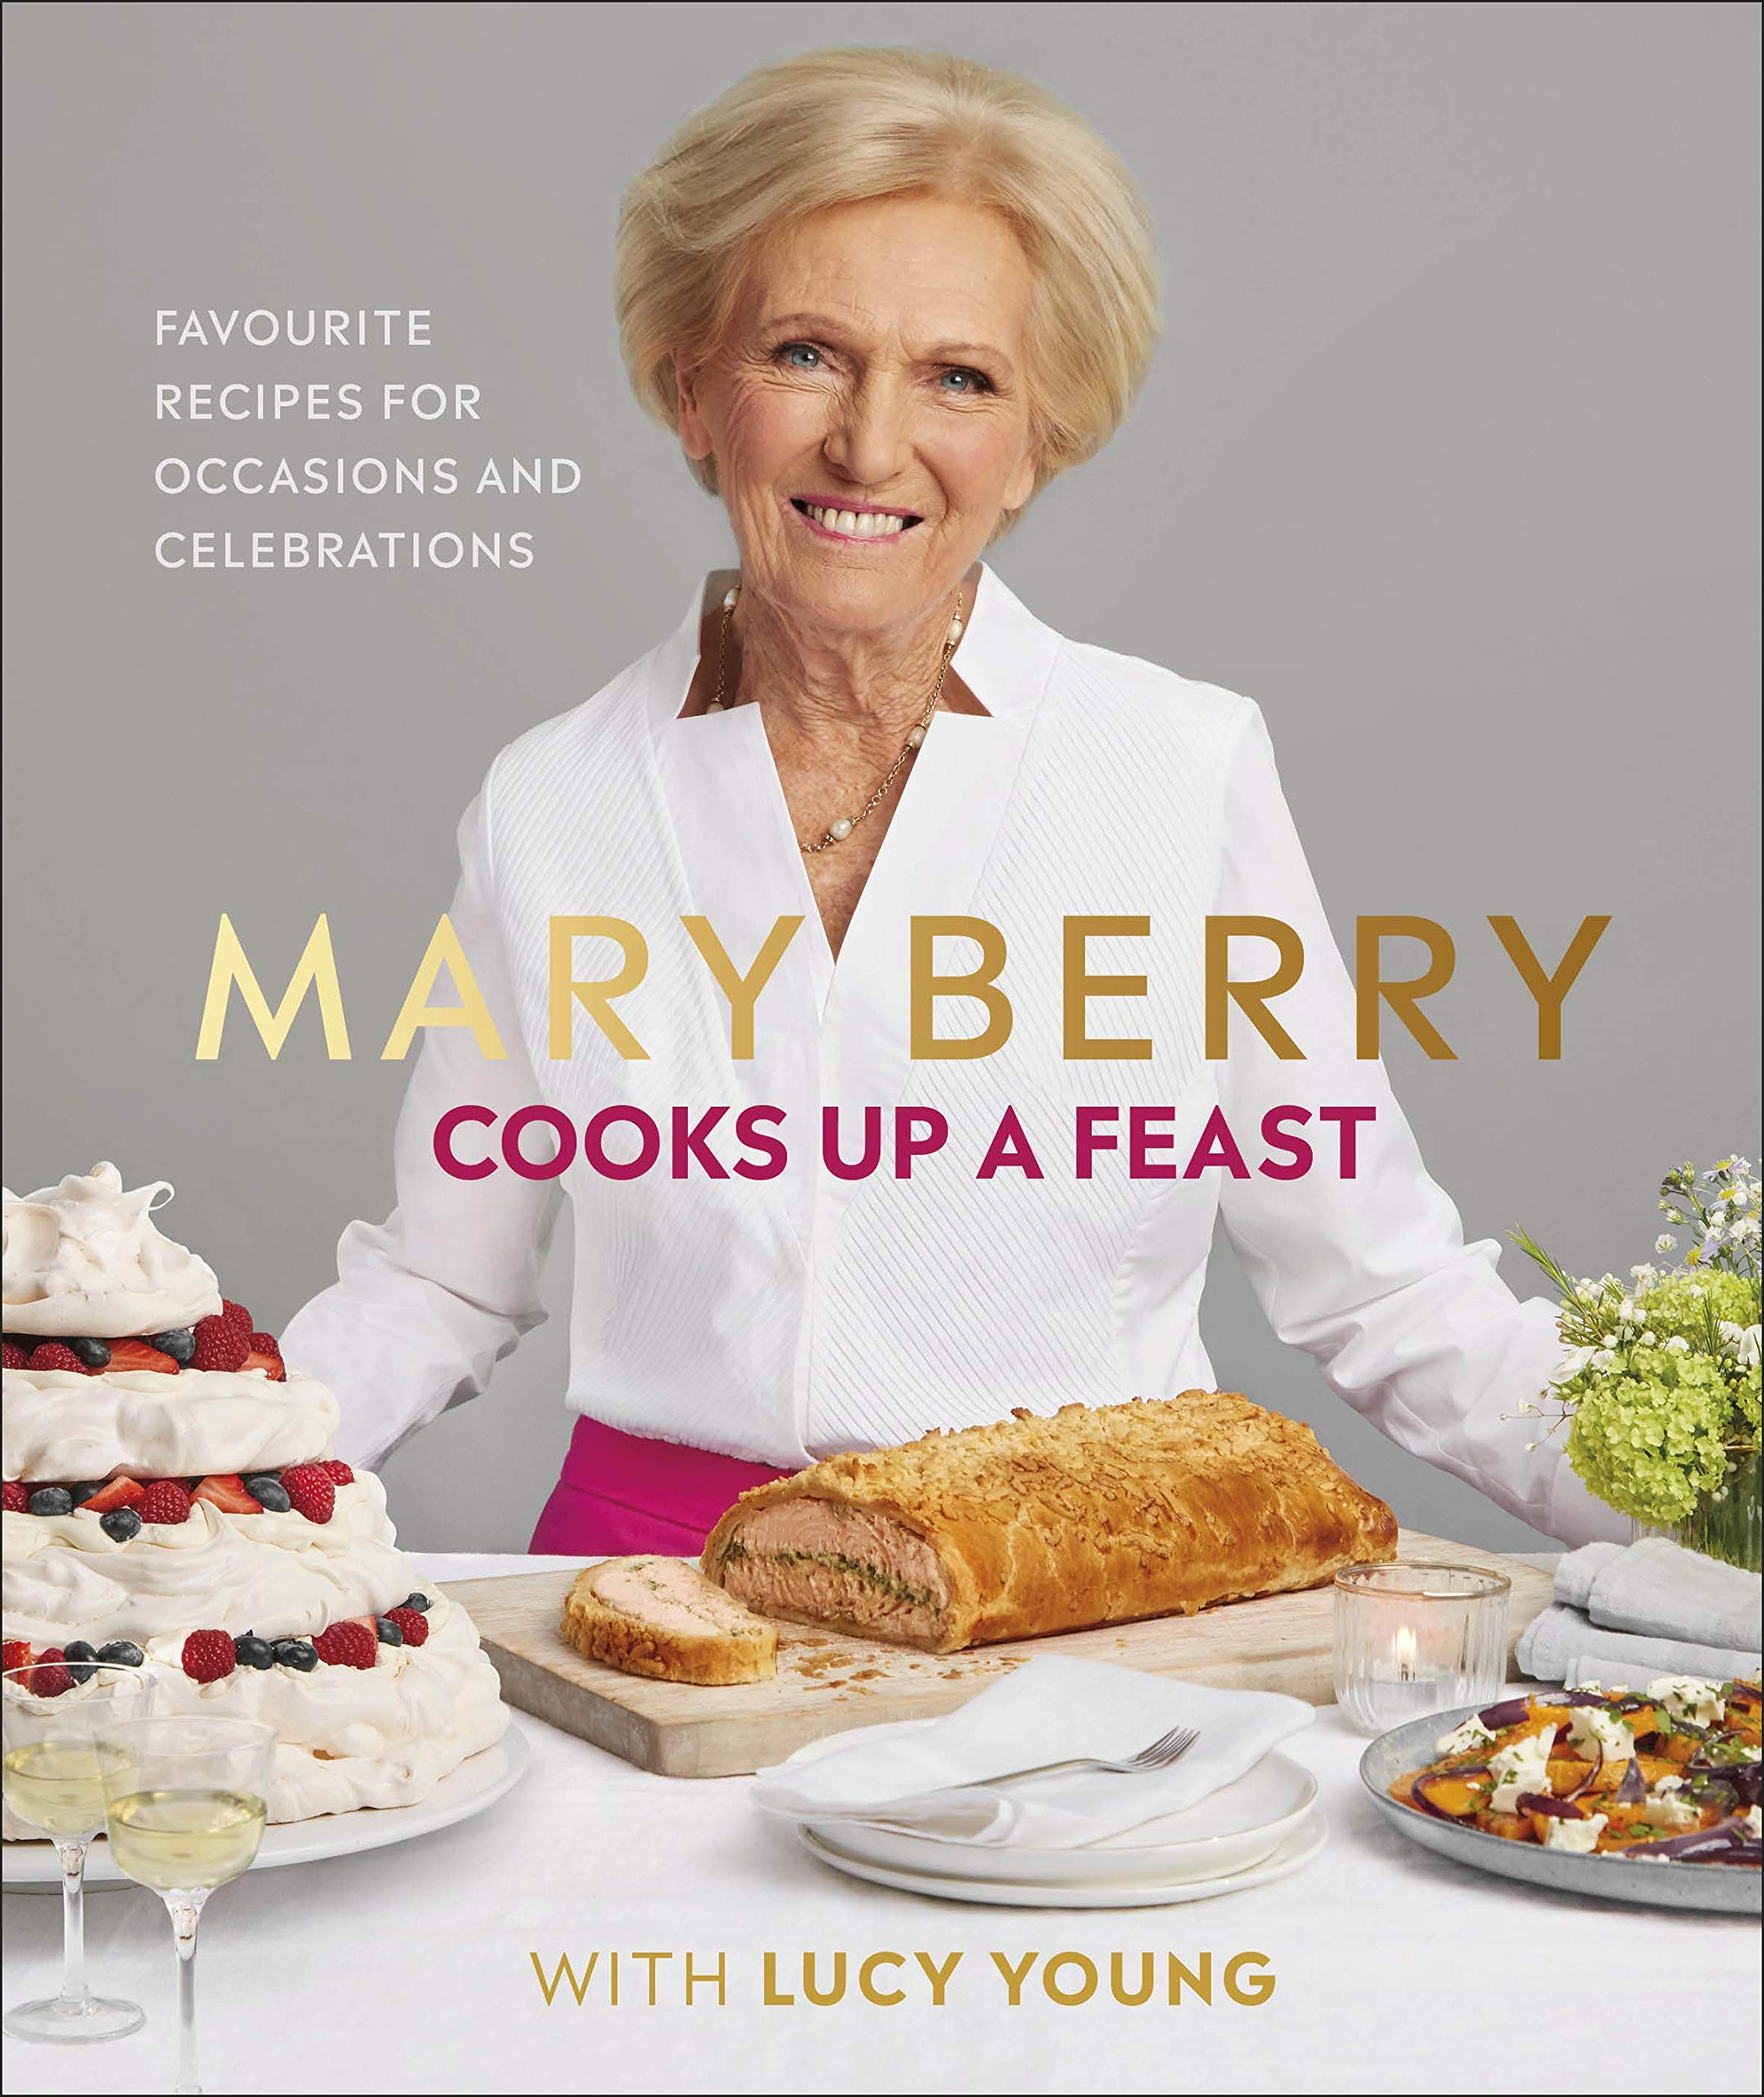 Mary Berry Cooks Up A Feast: My Favourite Recipes for Occasions and Celebrations by DK